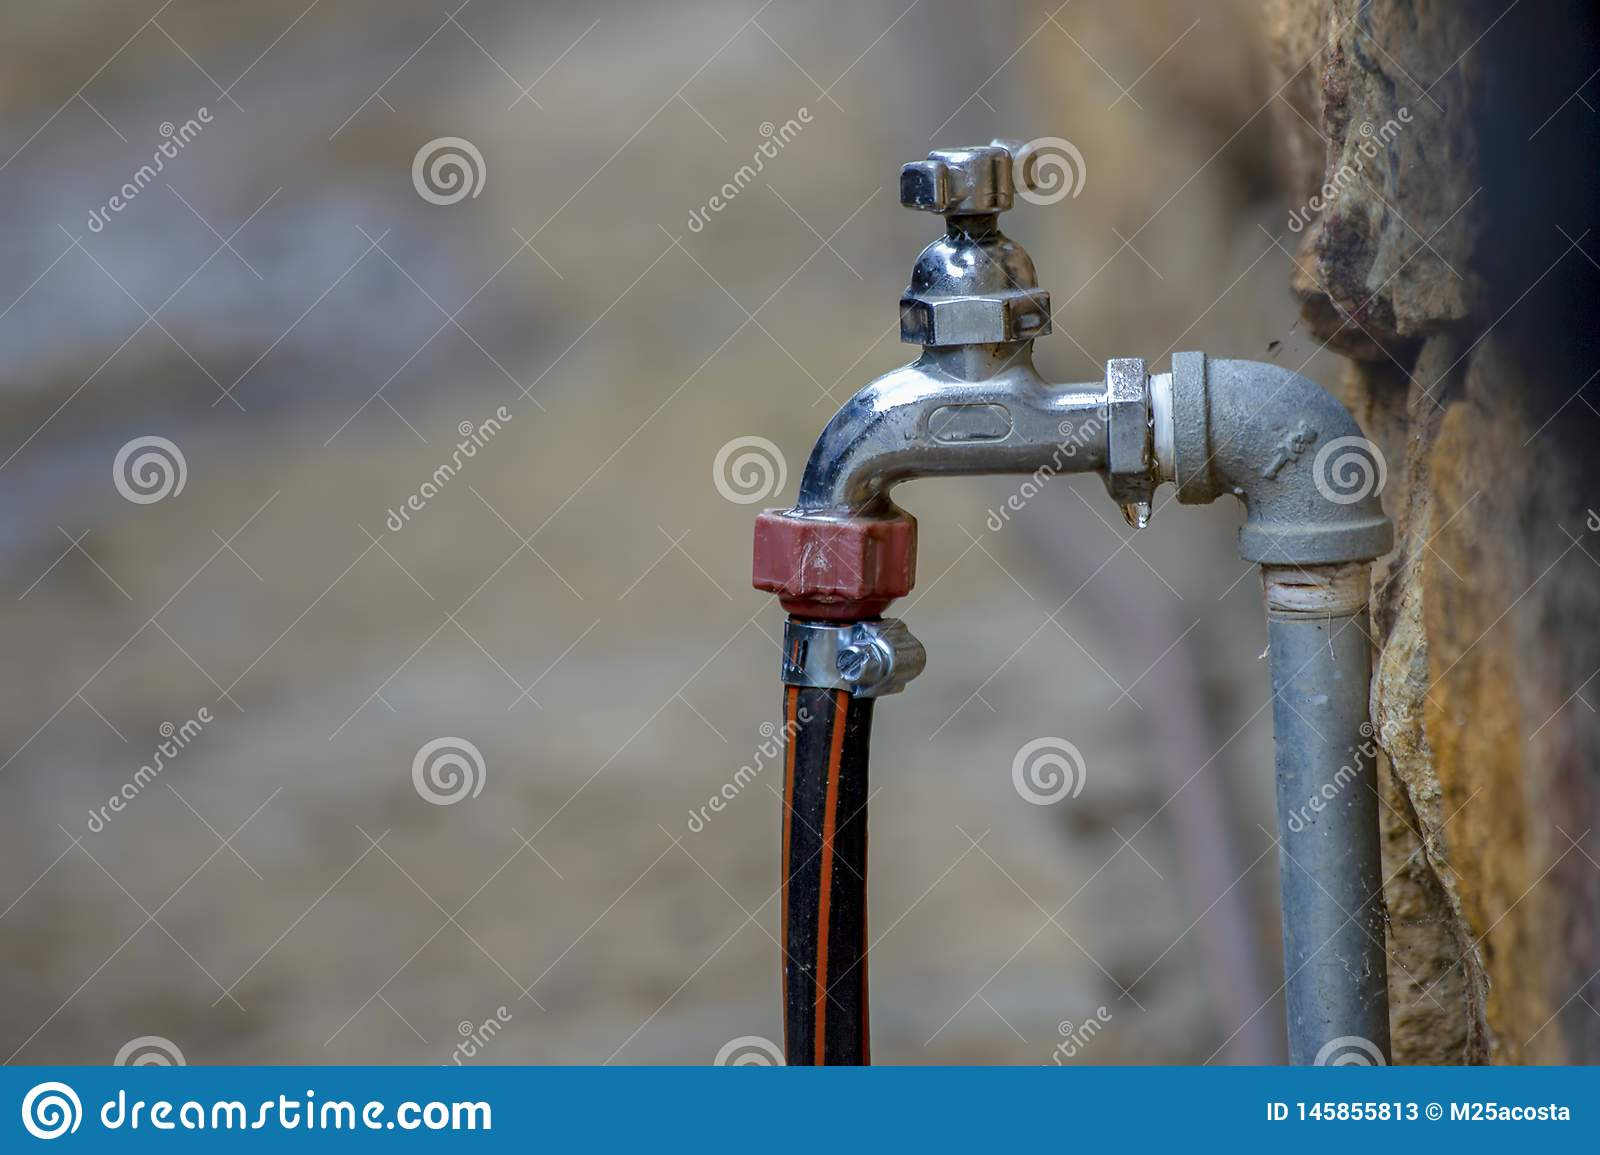 Dripping faucet with the hose connected